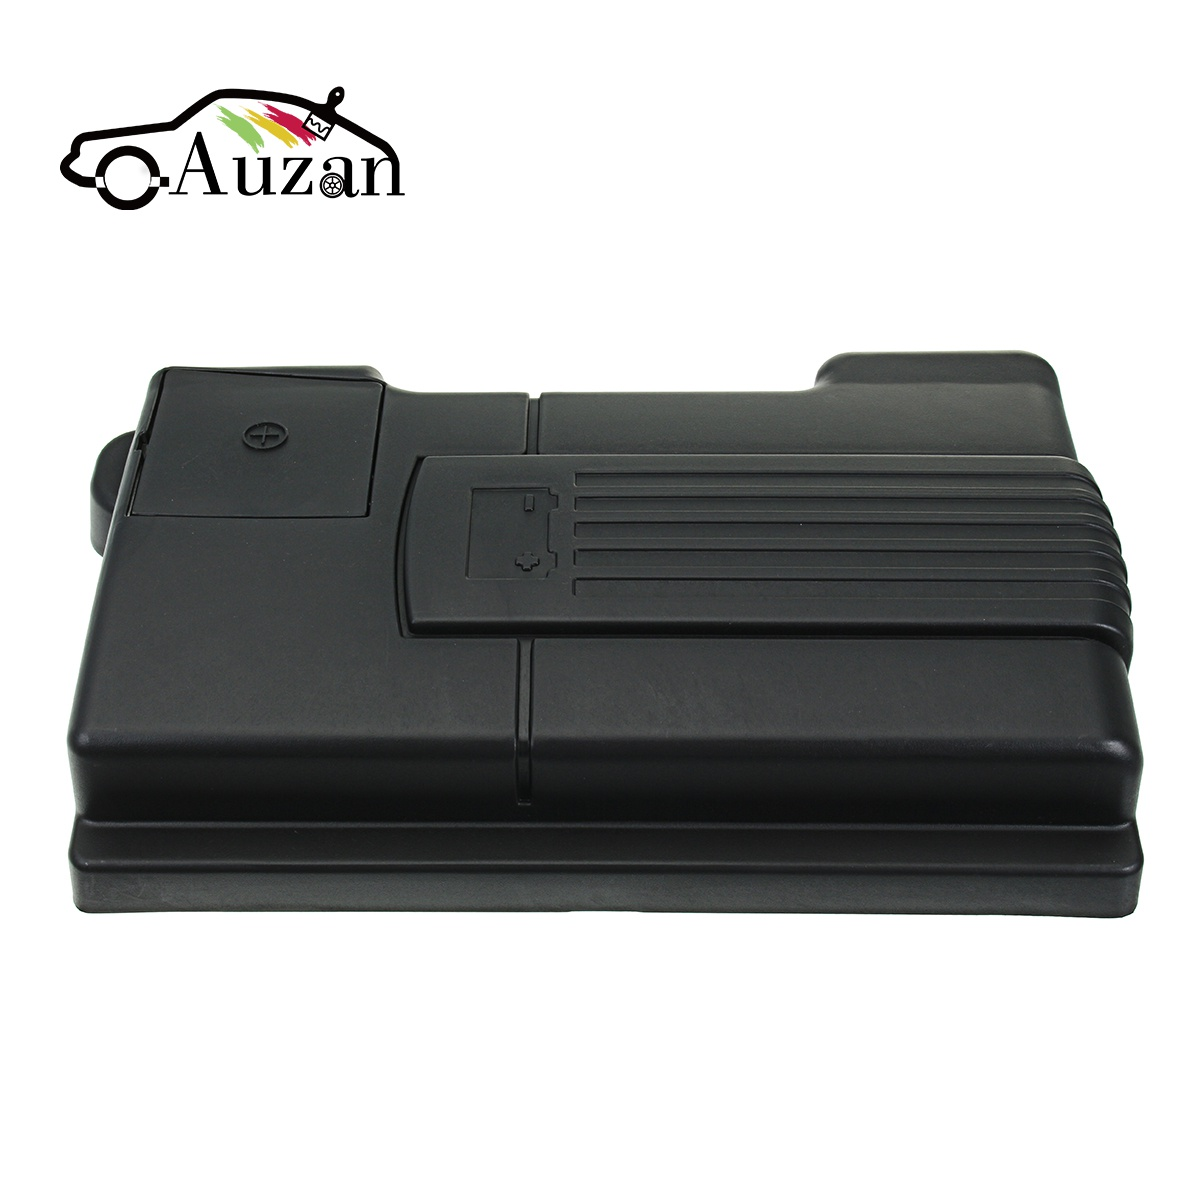 Car Engine Battery Dustproof Cover Negative Electrode Waterproof Protective Cover for Skoda Kodiaq for VW Tiguan L 16-18 1 18 масштаб vw volkswagen новый tiguan l 2017 оранжевый diecast модель автомобиля